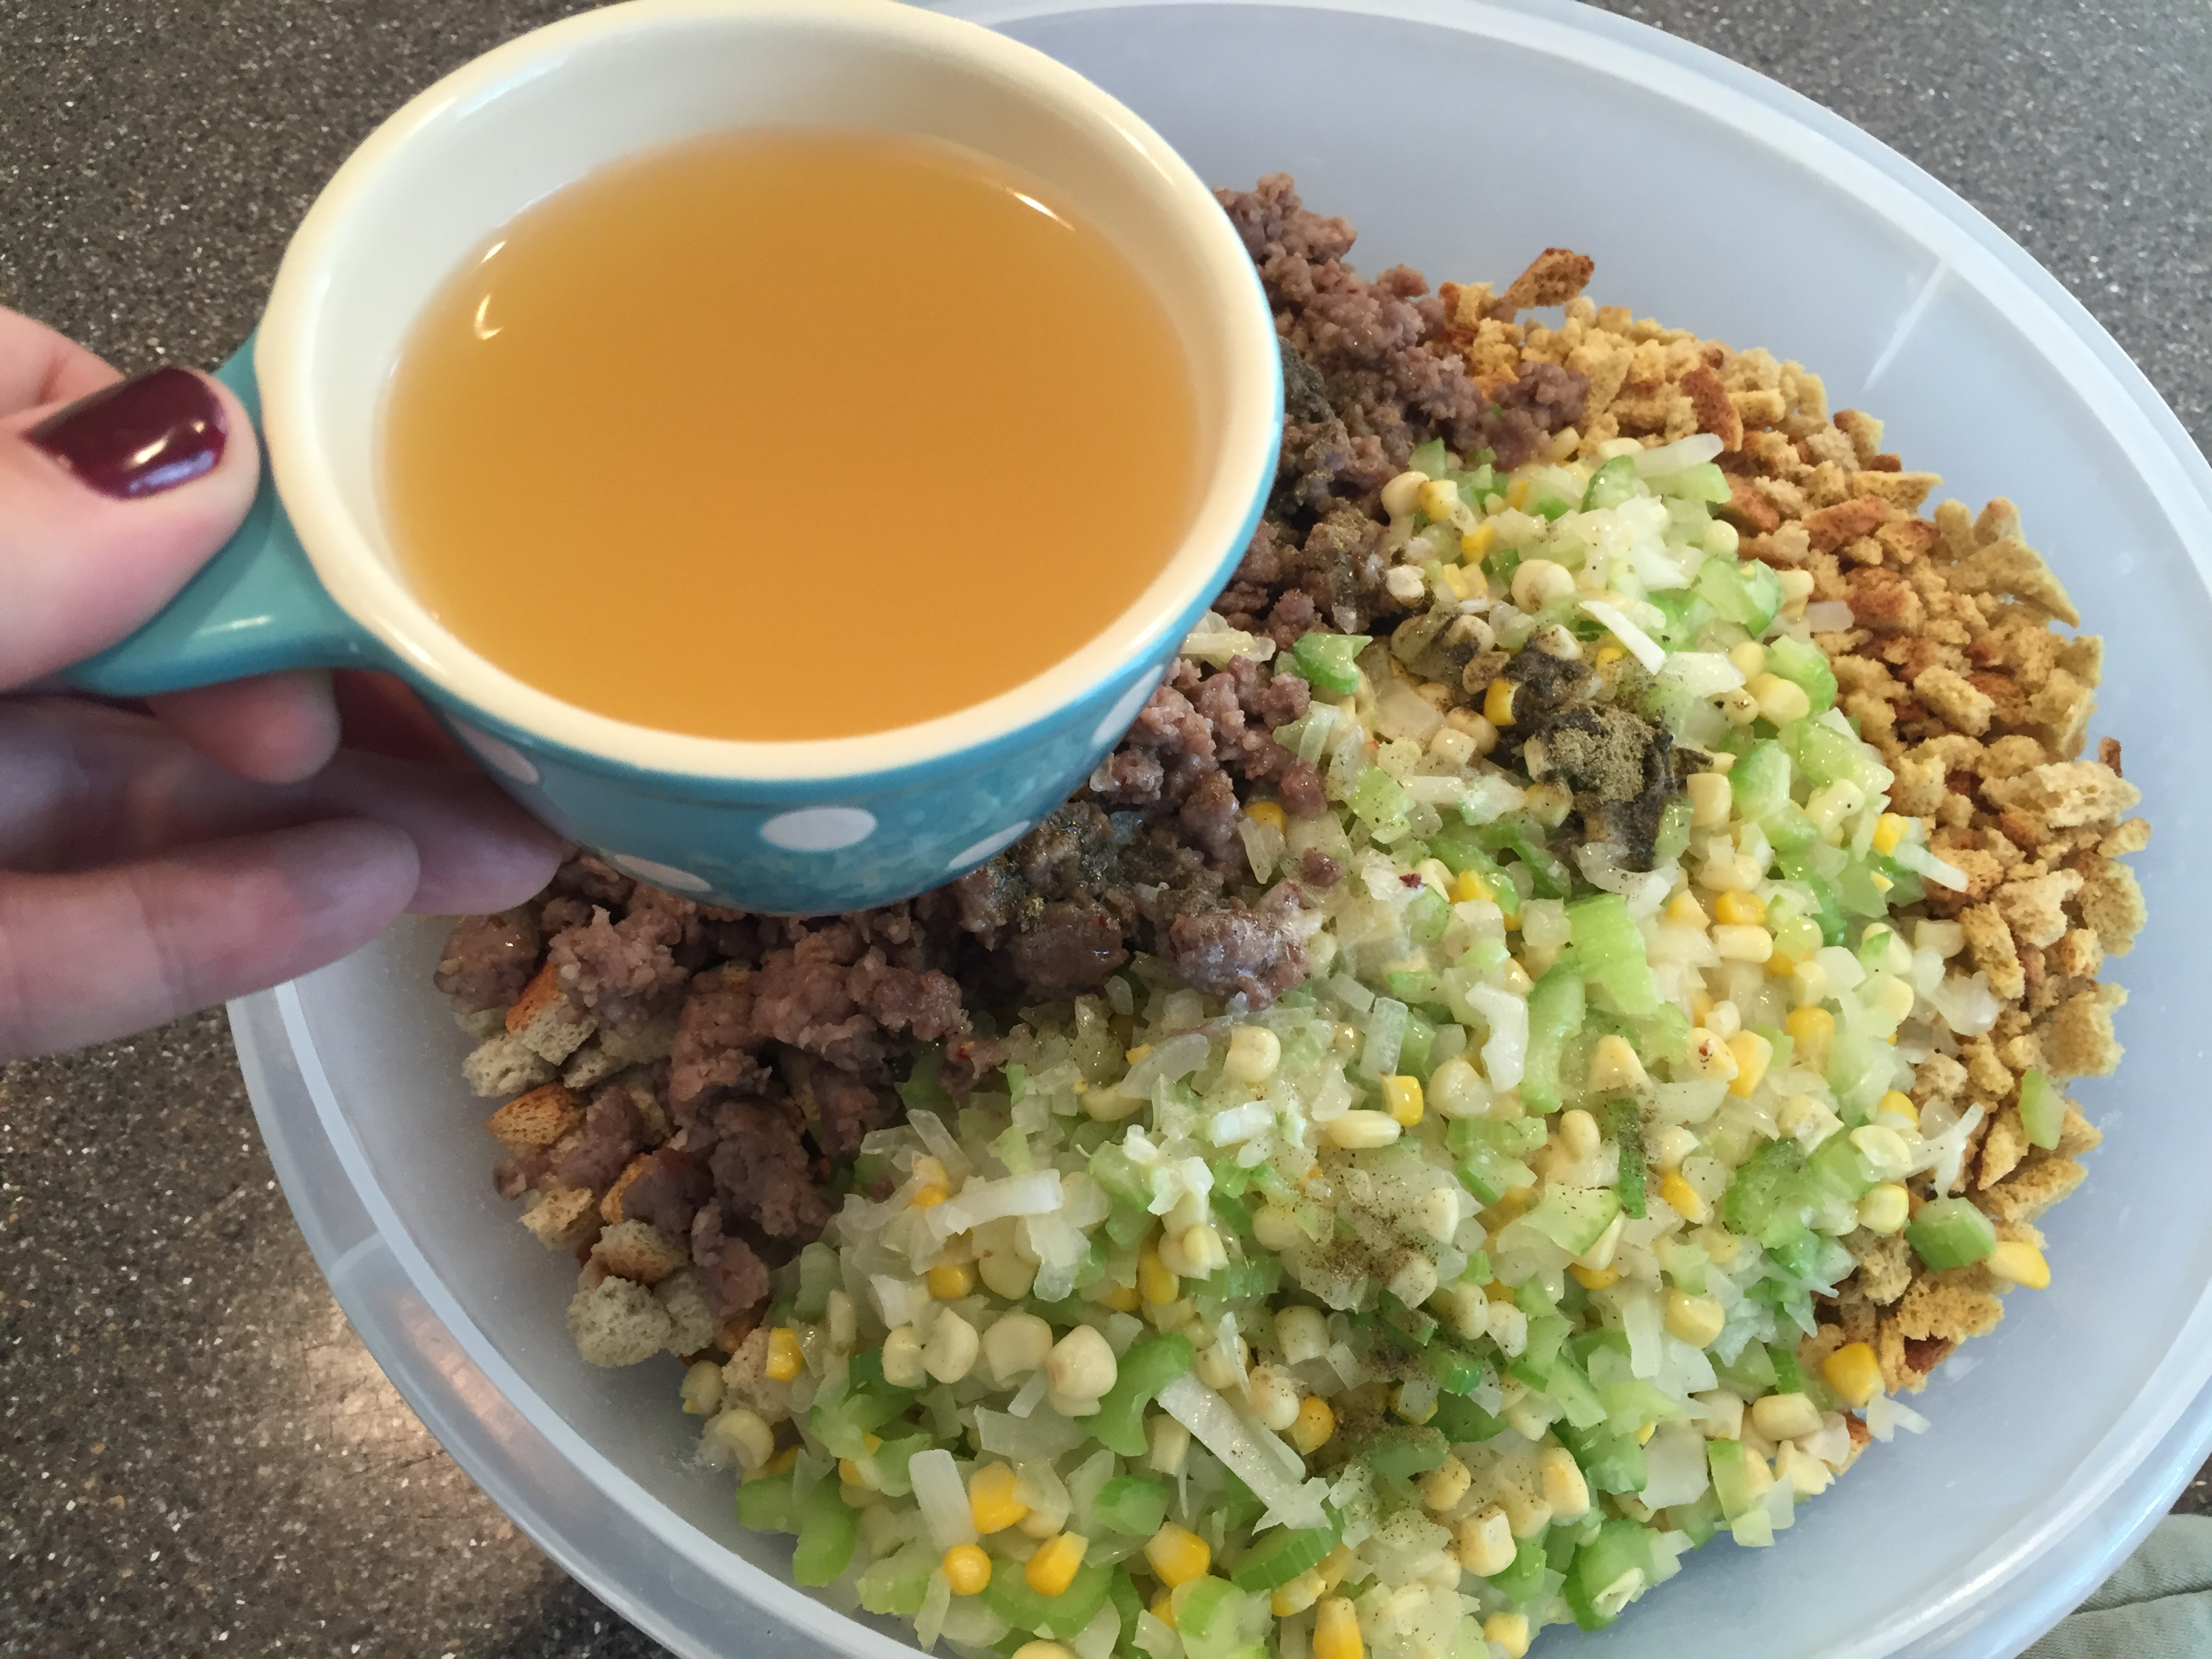 Chicken stock is an ingredient for stuffing with sausage recipe